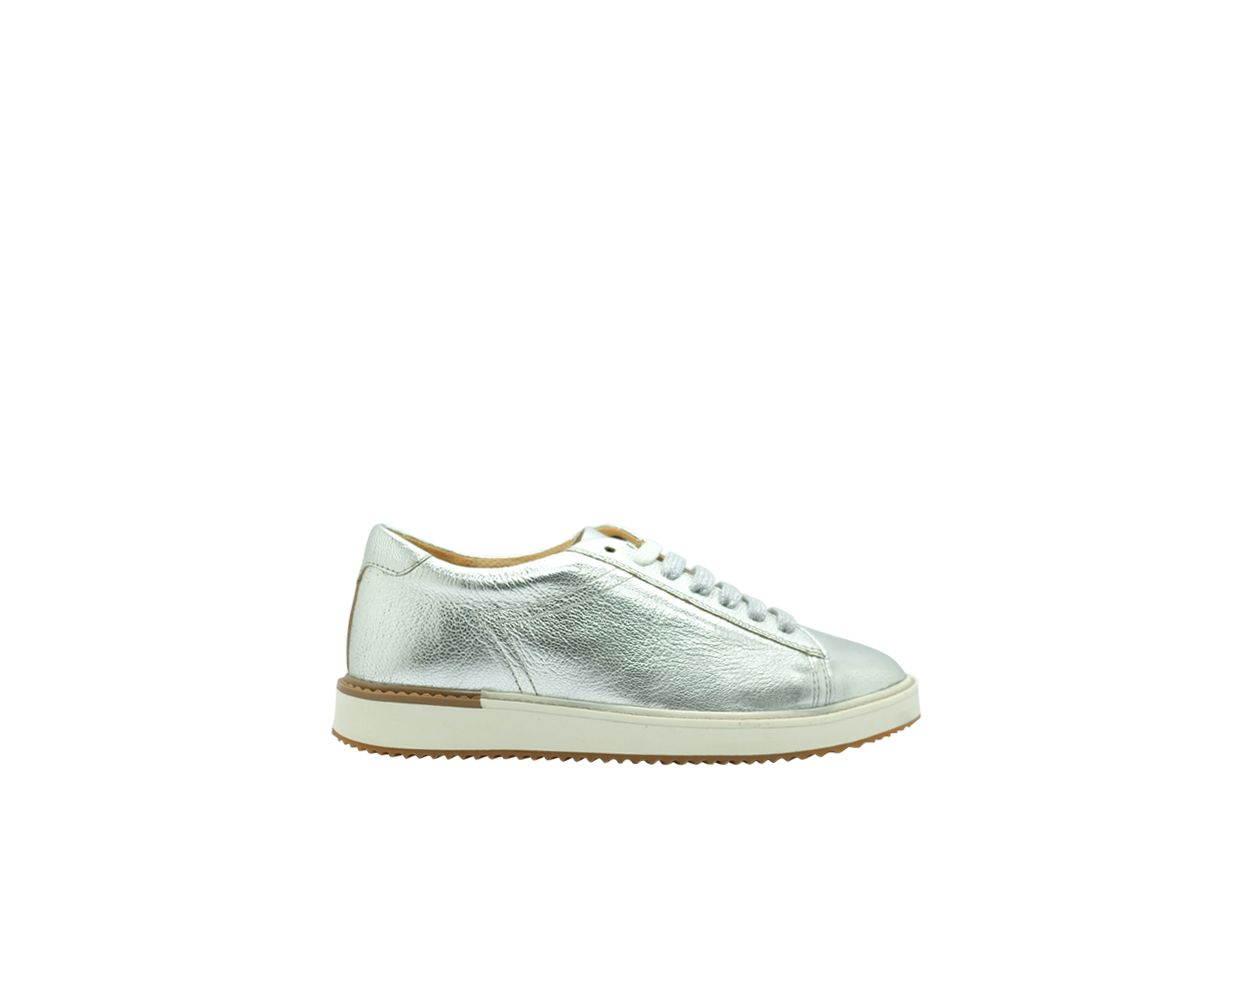 hush puppies silver shoes